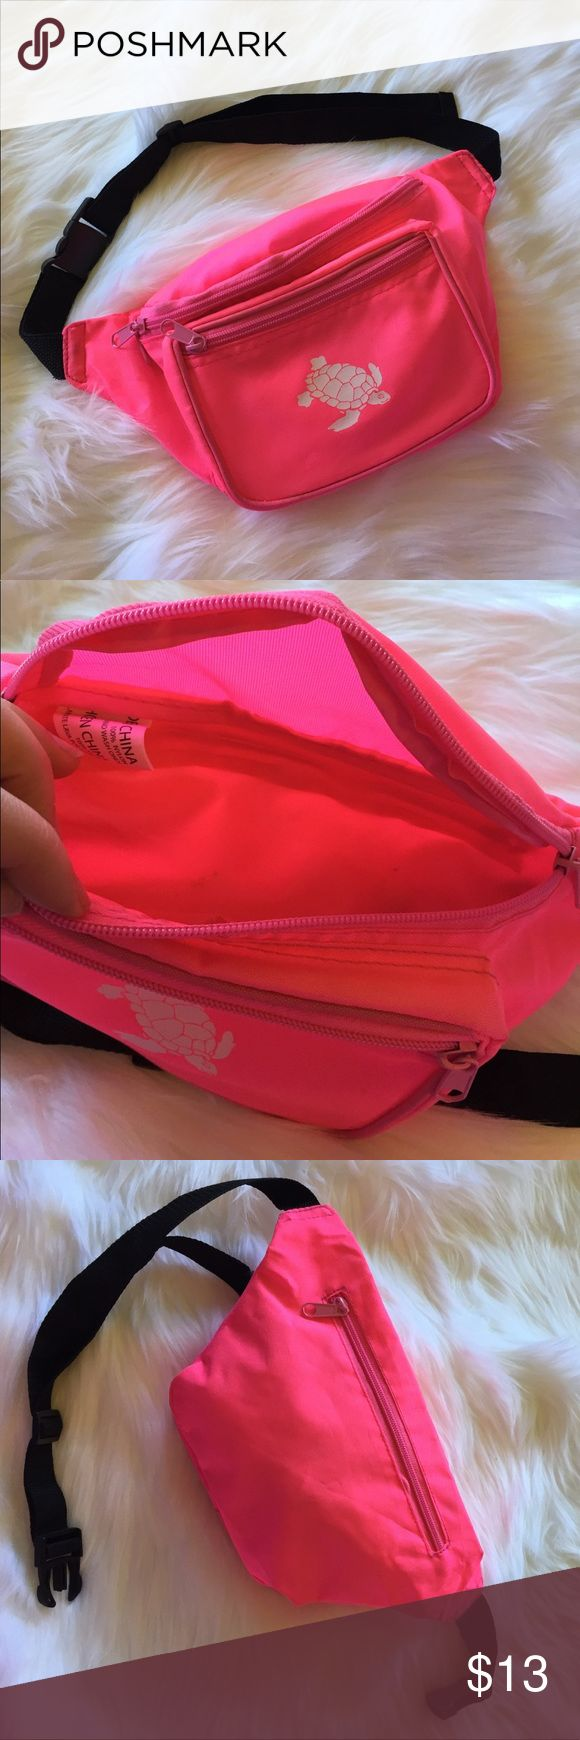 "Hot Pink Turtle Fanny Pack How cute is this? This is a very well made fanny pack with 3 different zippered pockets and an adorable turtle on the front. Waist strap is adjustable from tiny to big. No flaws or stains on material. Looks new! Worn a couple of times. 12"" across at widest part where belt connects. This has quite a bit of room. Bags Satchels"